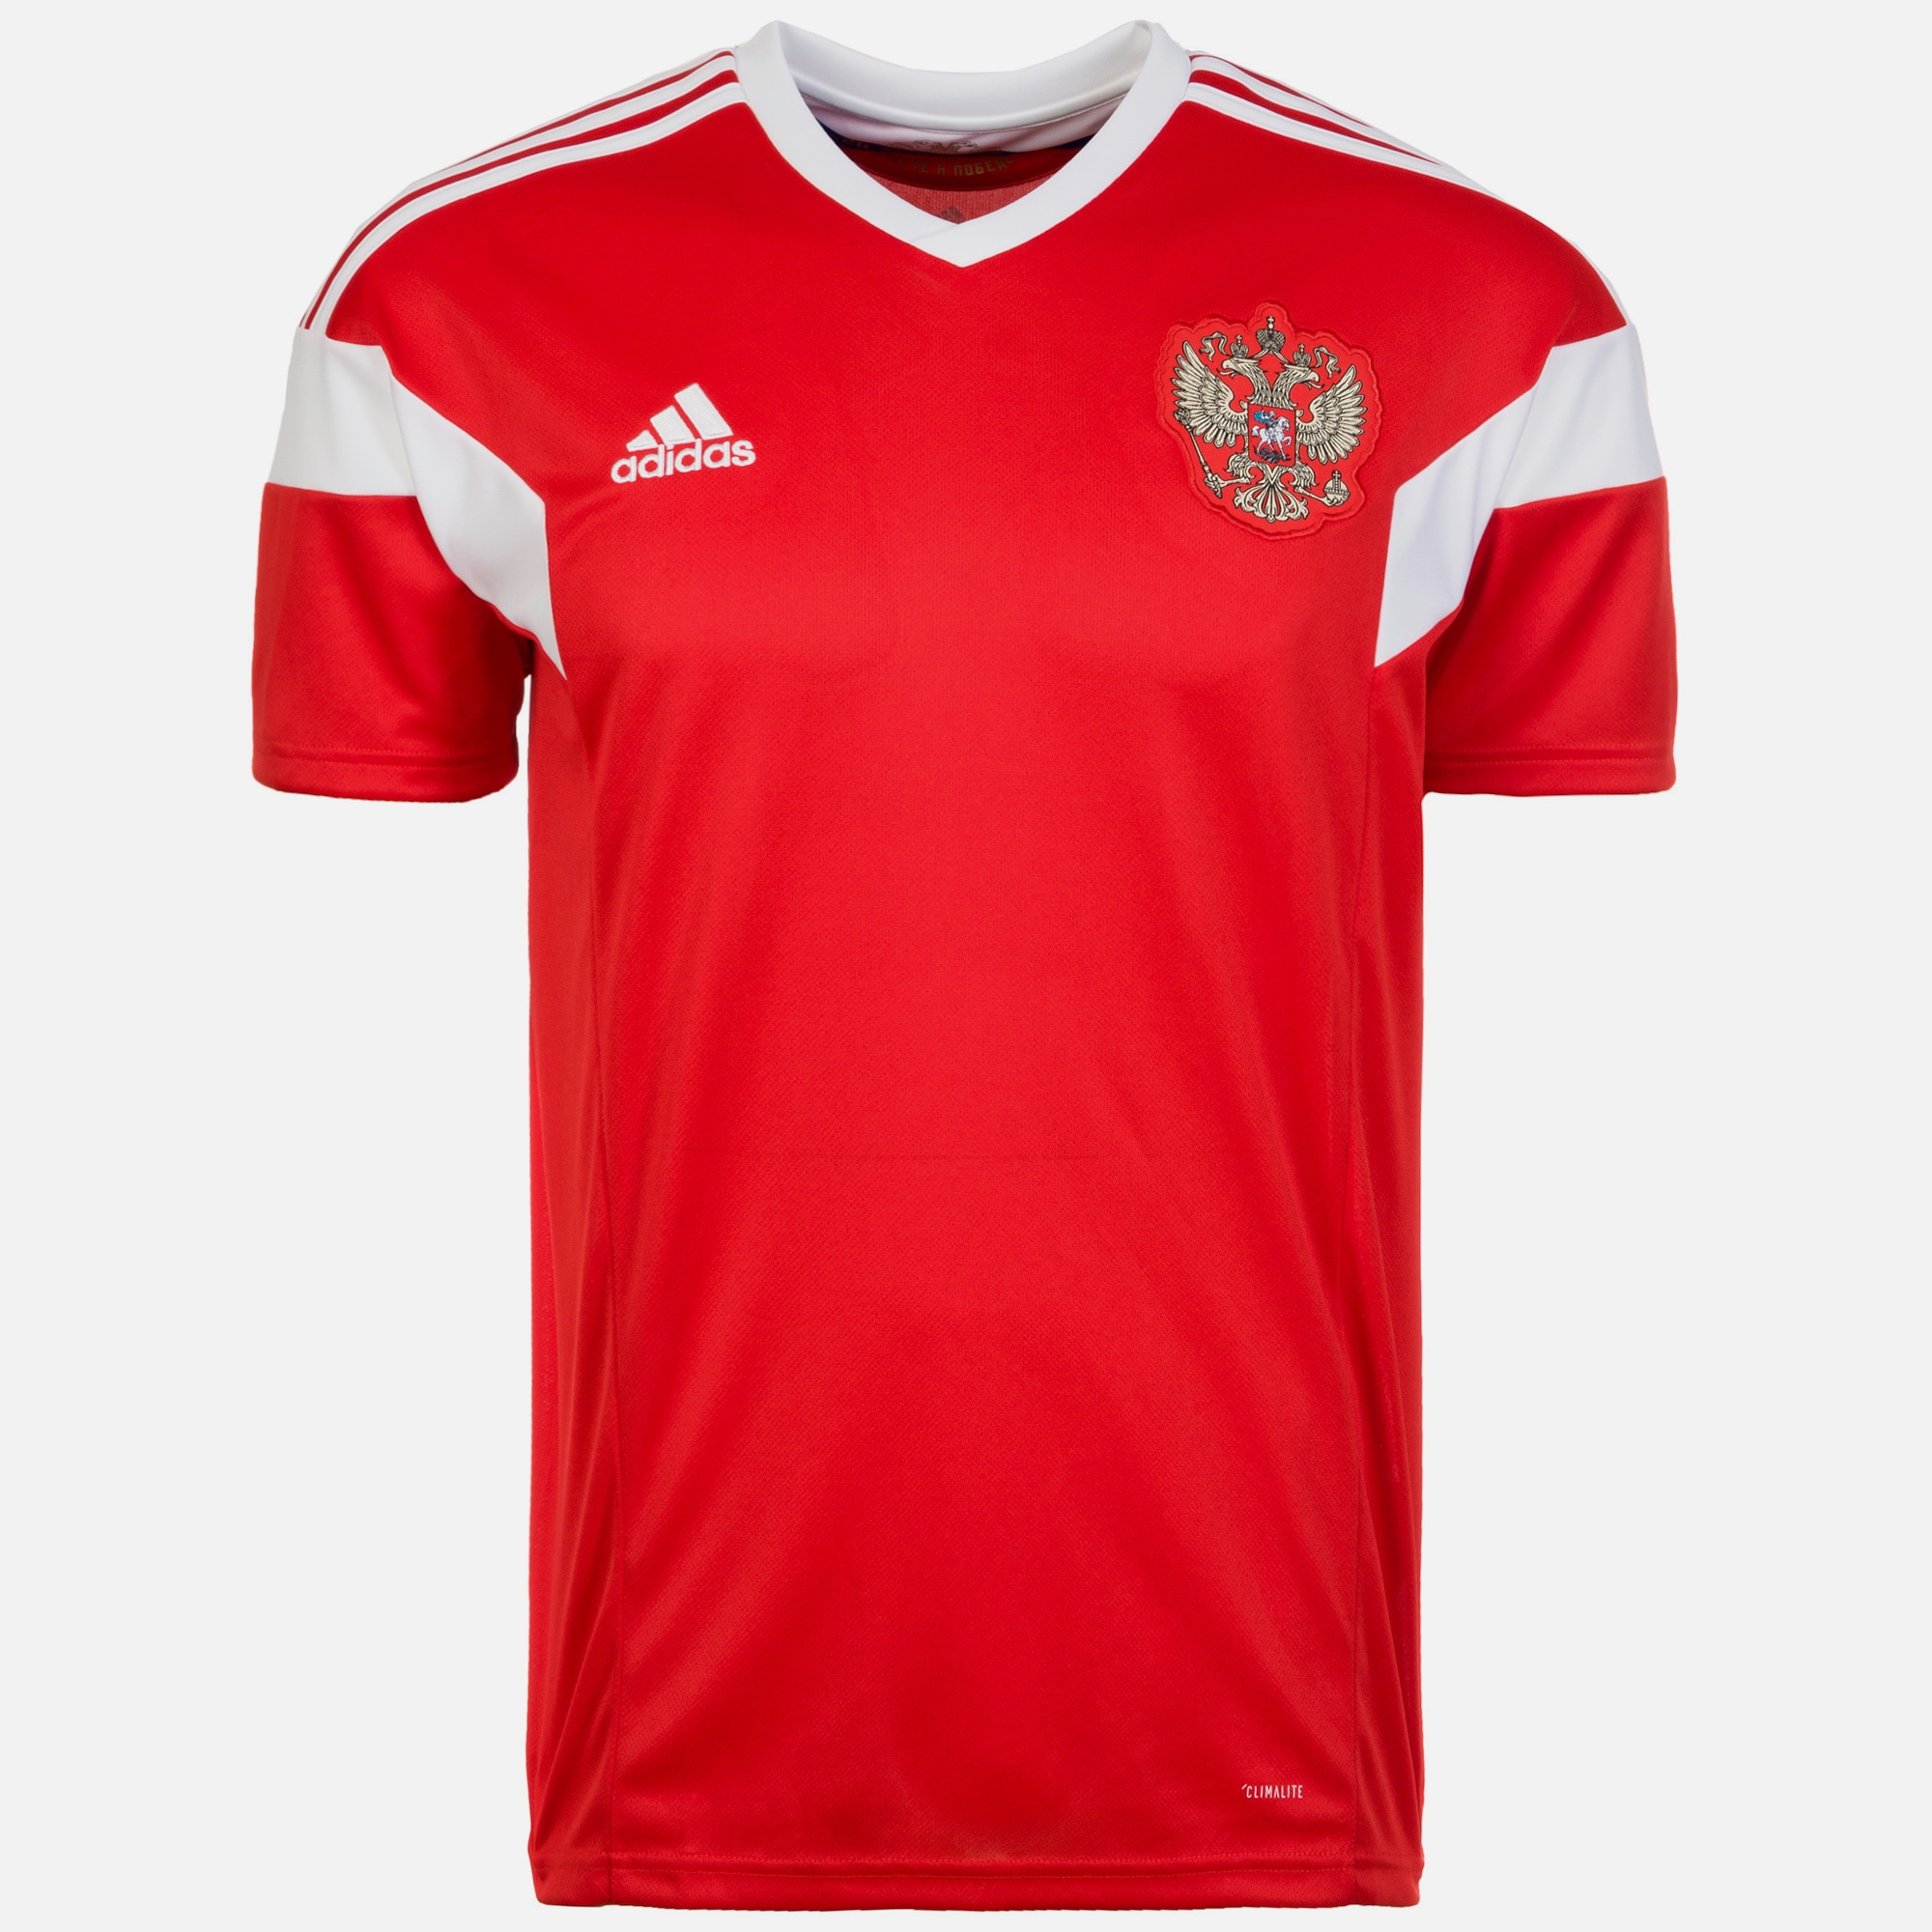 adidas performance russland trikot 39 home wm 2018 39 herren. Black Bedroom Furniture Sets. Home Design Ideas